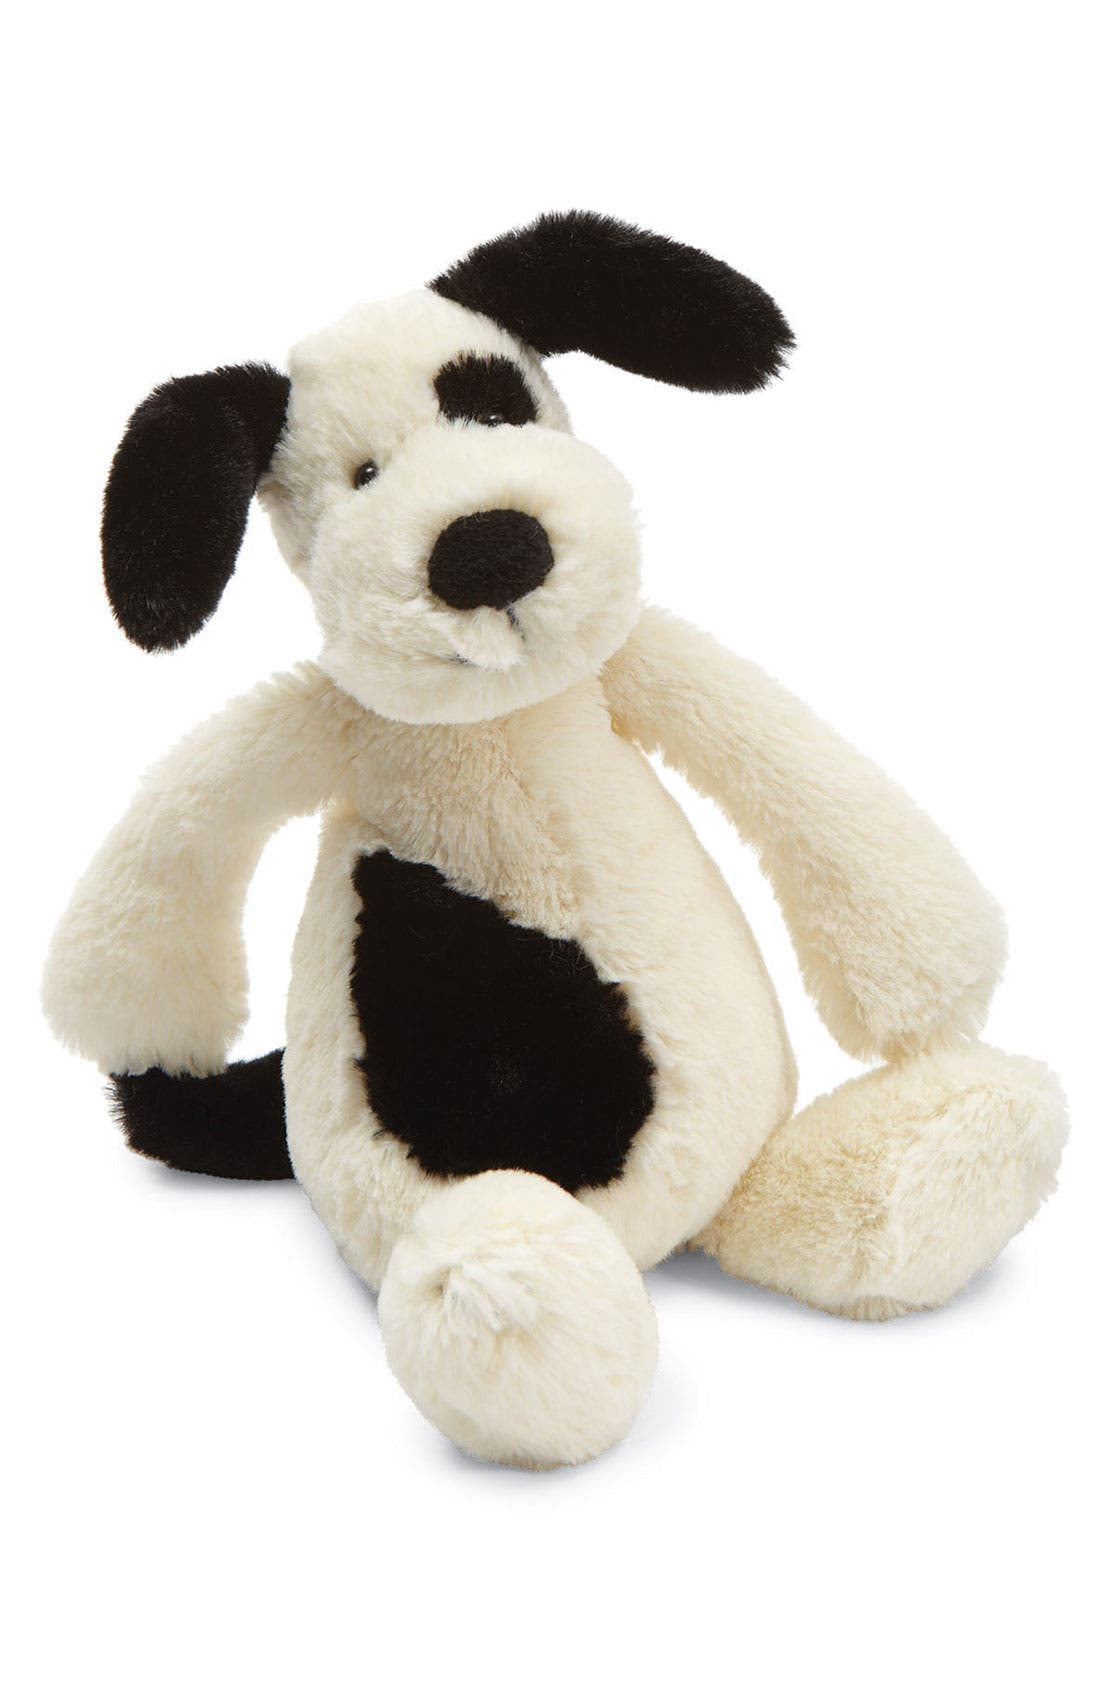 Main Image - Jellycat 'Bashful' Puppy Rattle